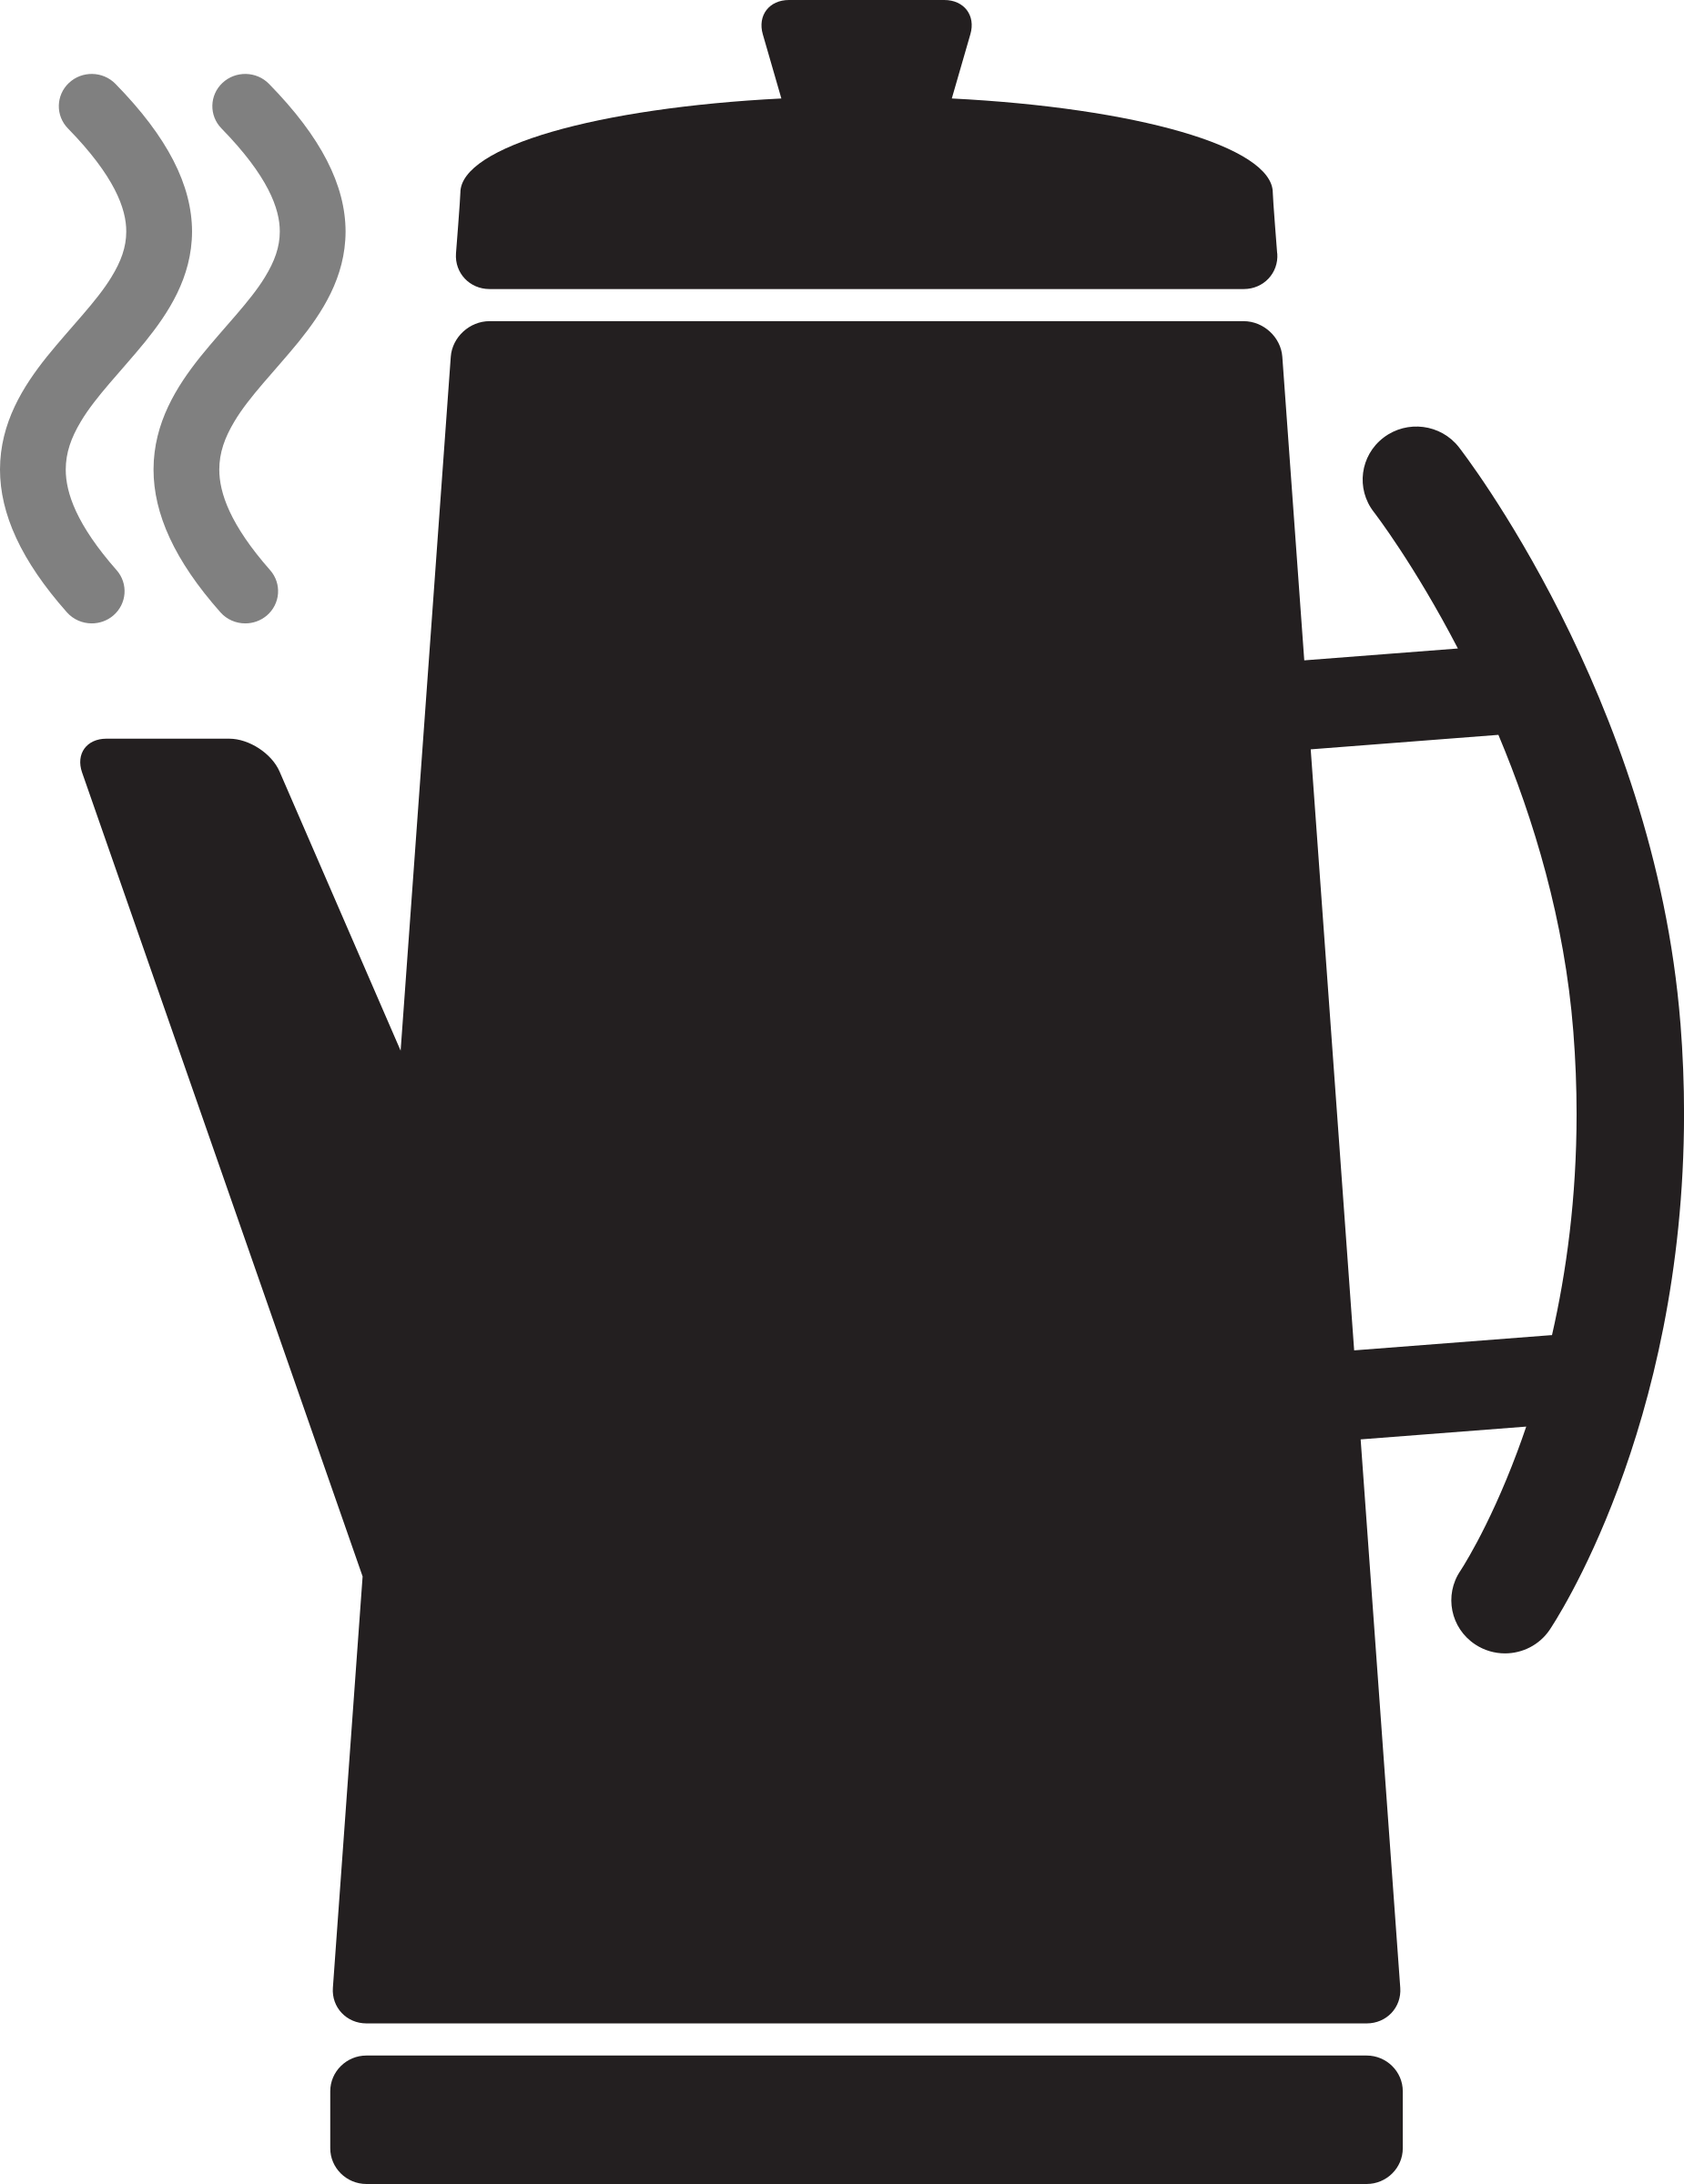 Clipart - Kitchen Icon - Coffee Percolator